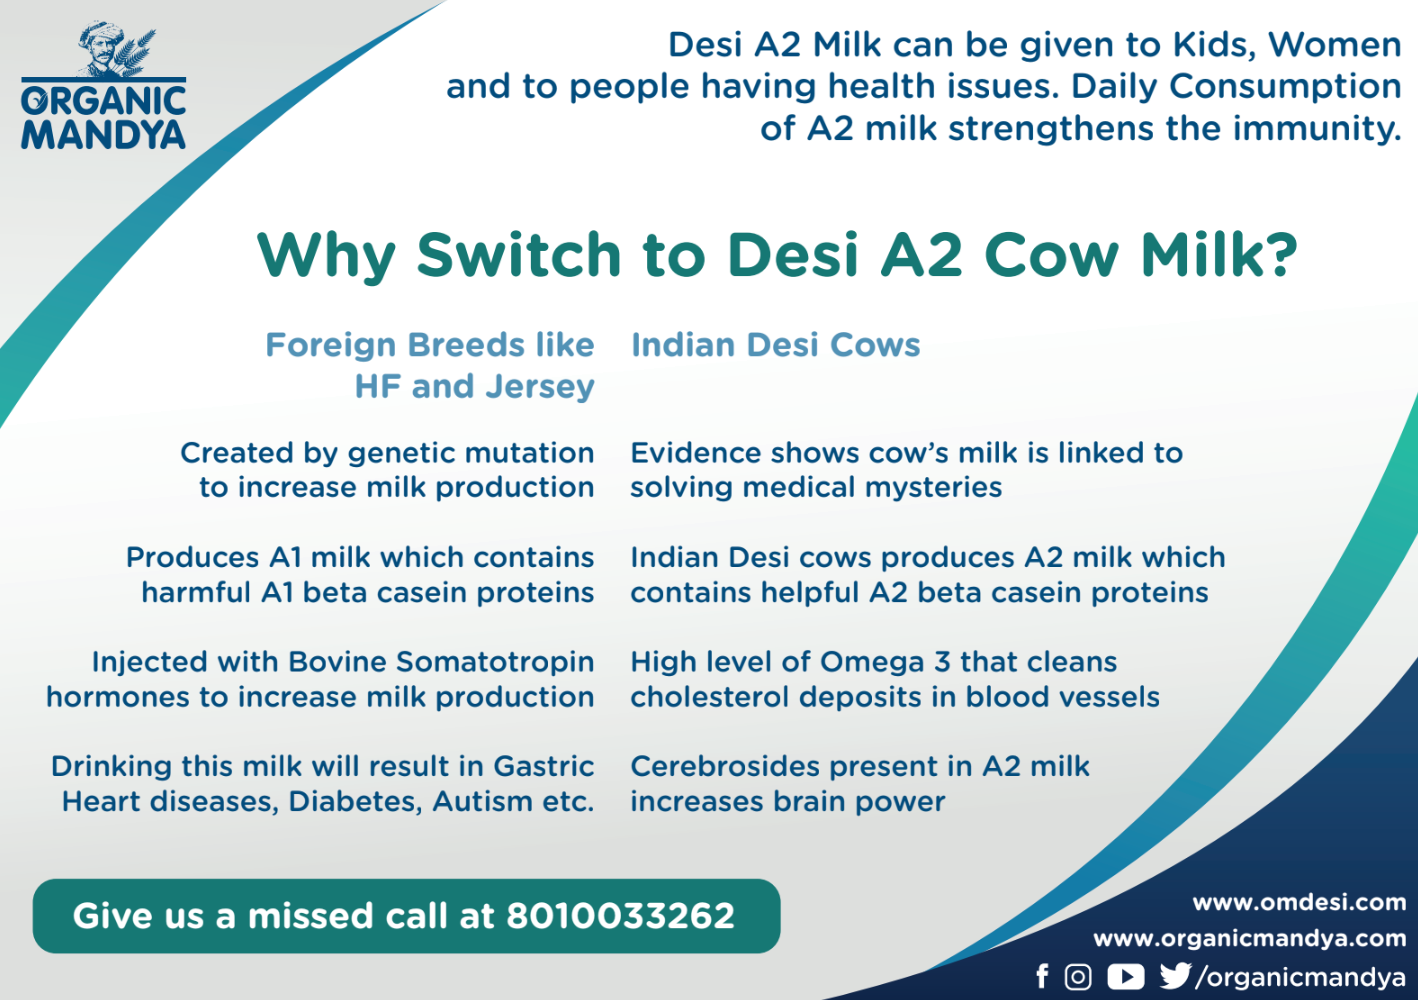 Tried our Desi A2 Milk yet?